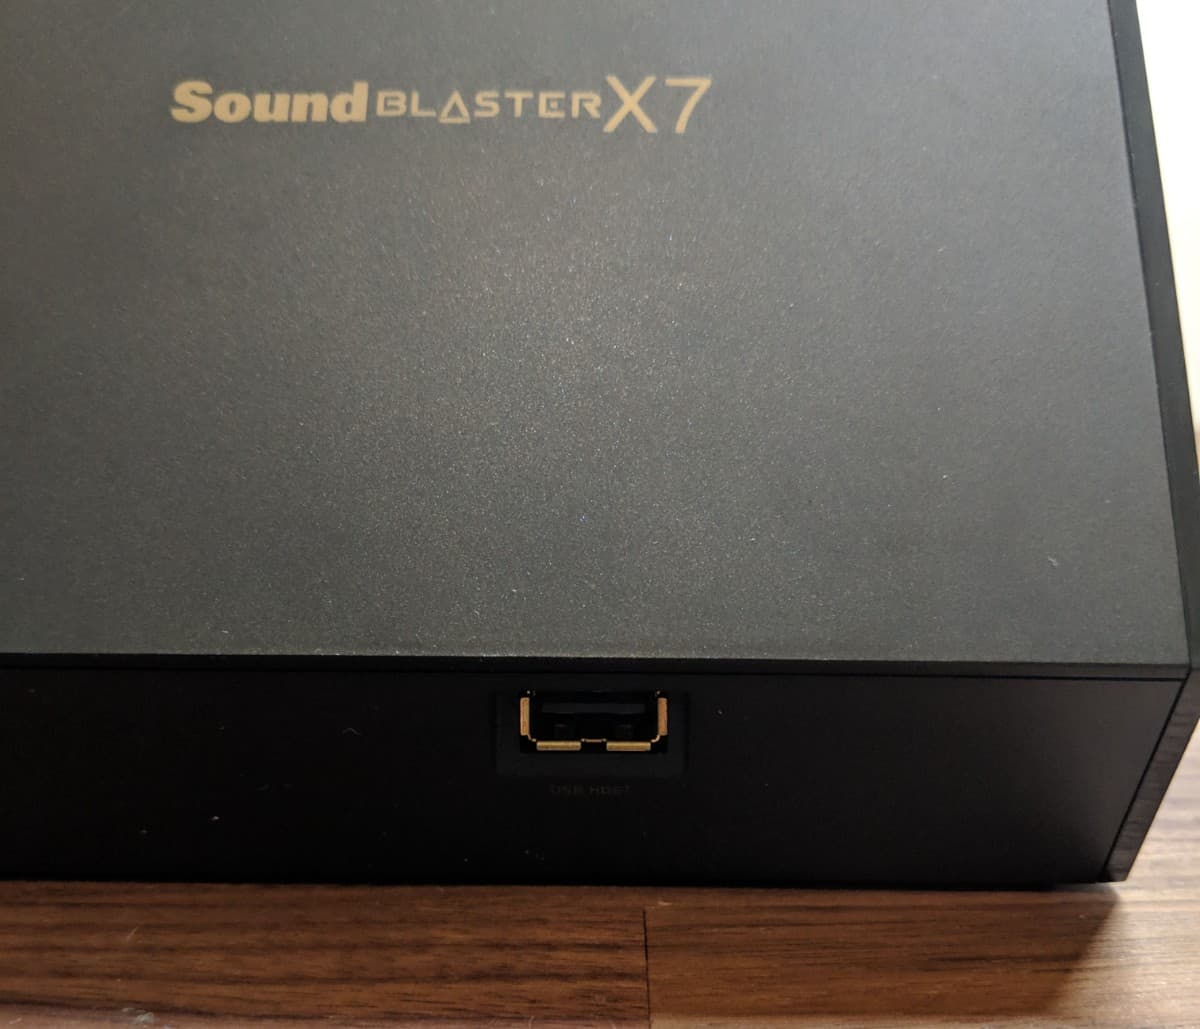 Creative-X7-Photos-07 Creative Sound Blaster X7 Review